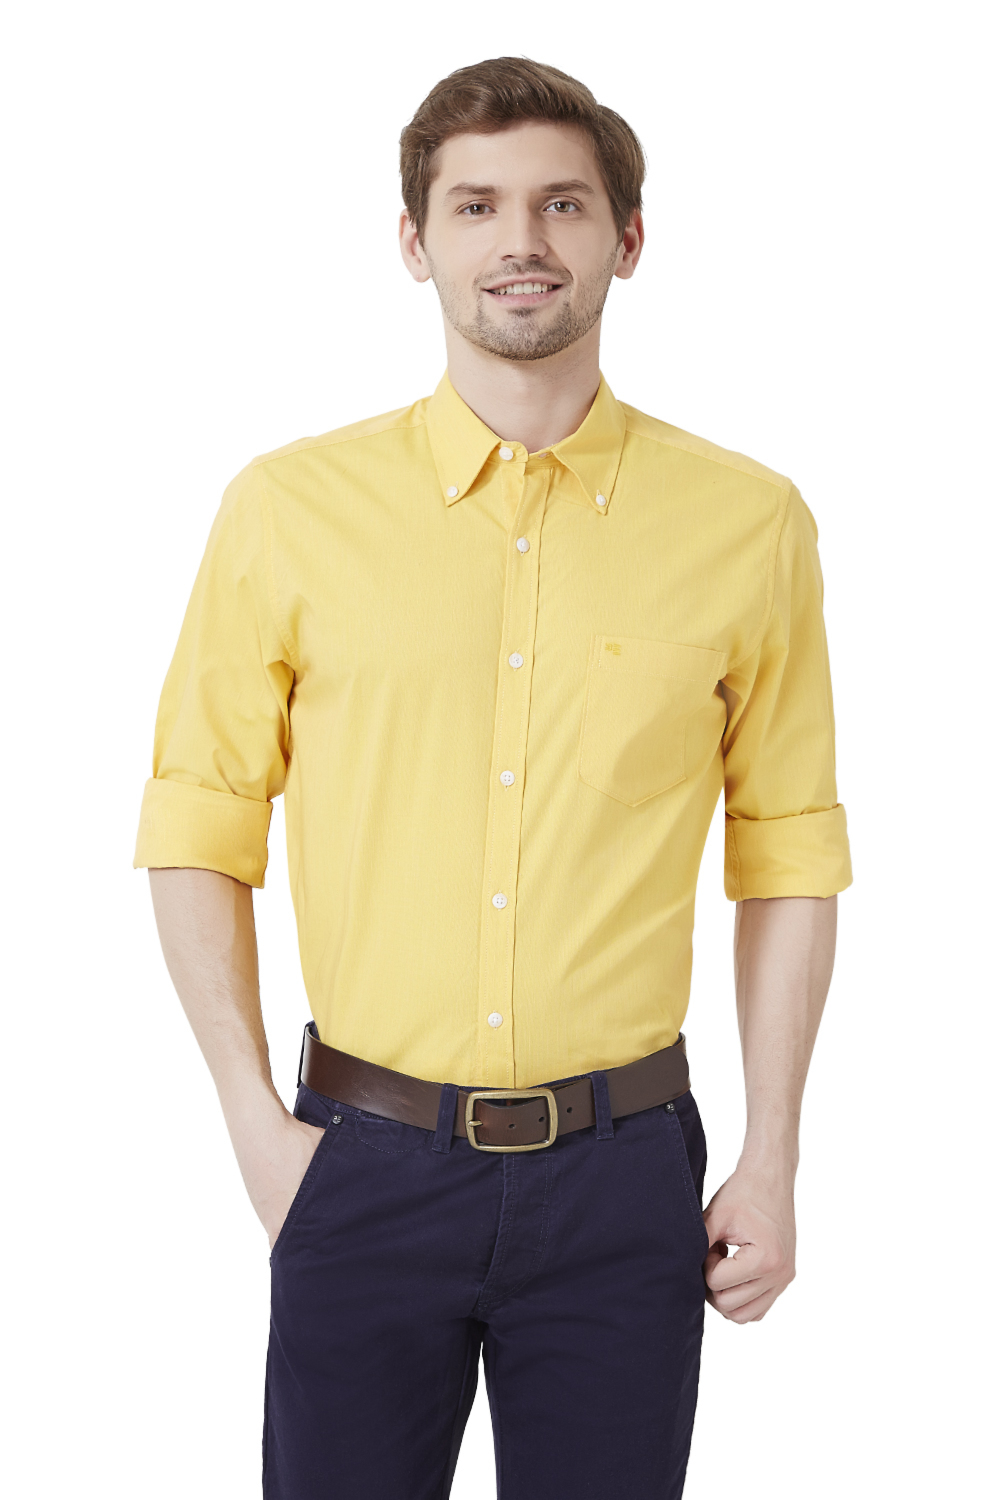 yellow shirts for men is shirt